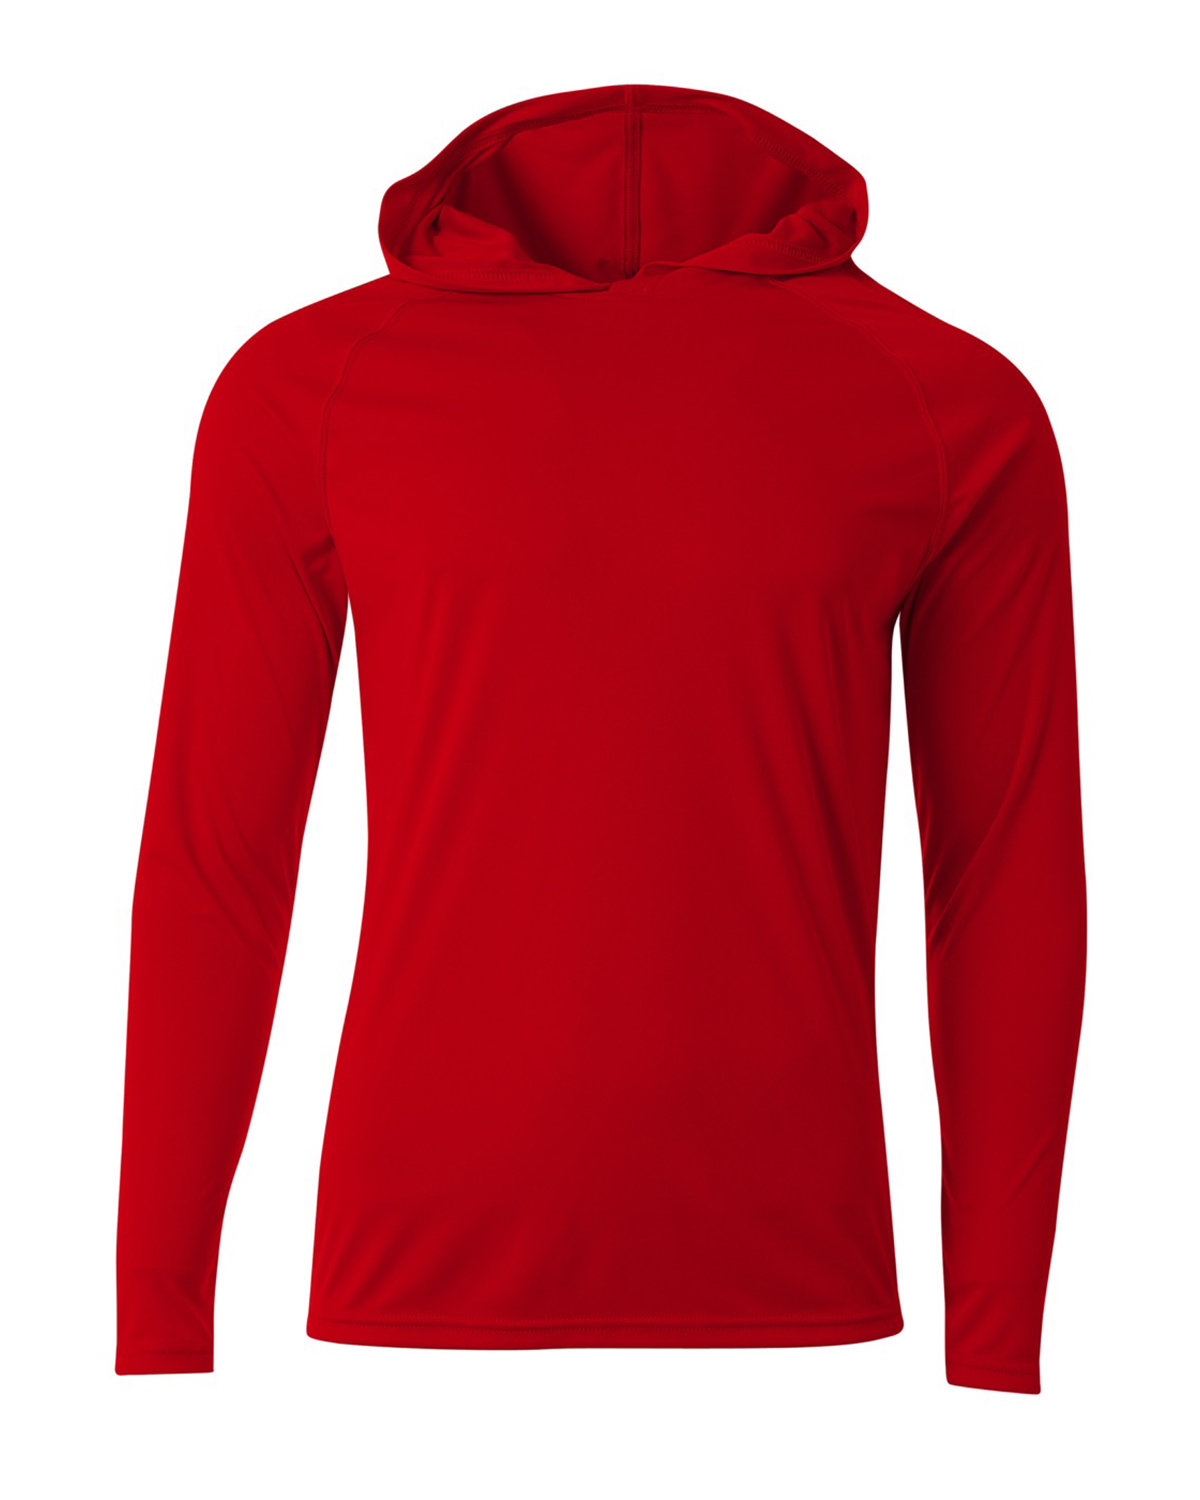 A4 Men's Cooling Performance Long-Sleeve Hooded T-shirt SCARLET